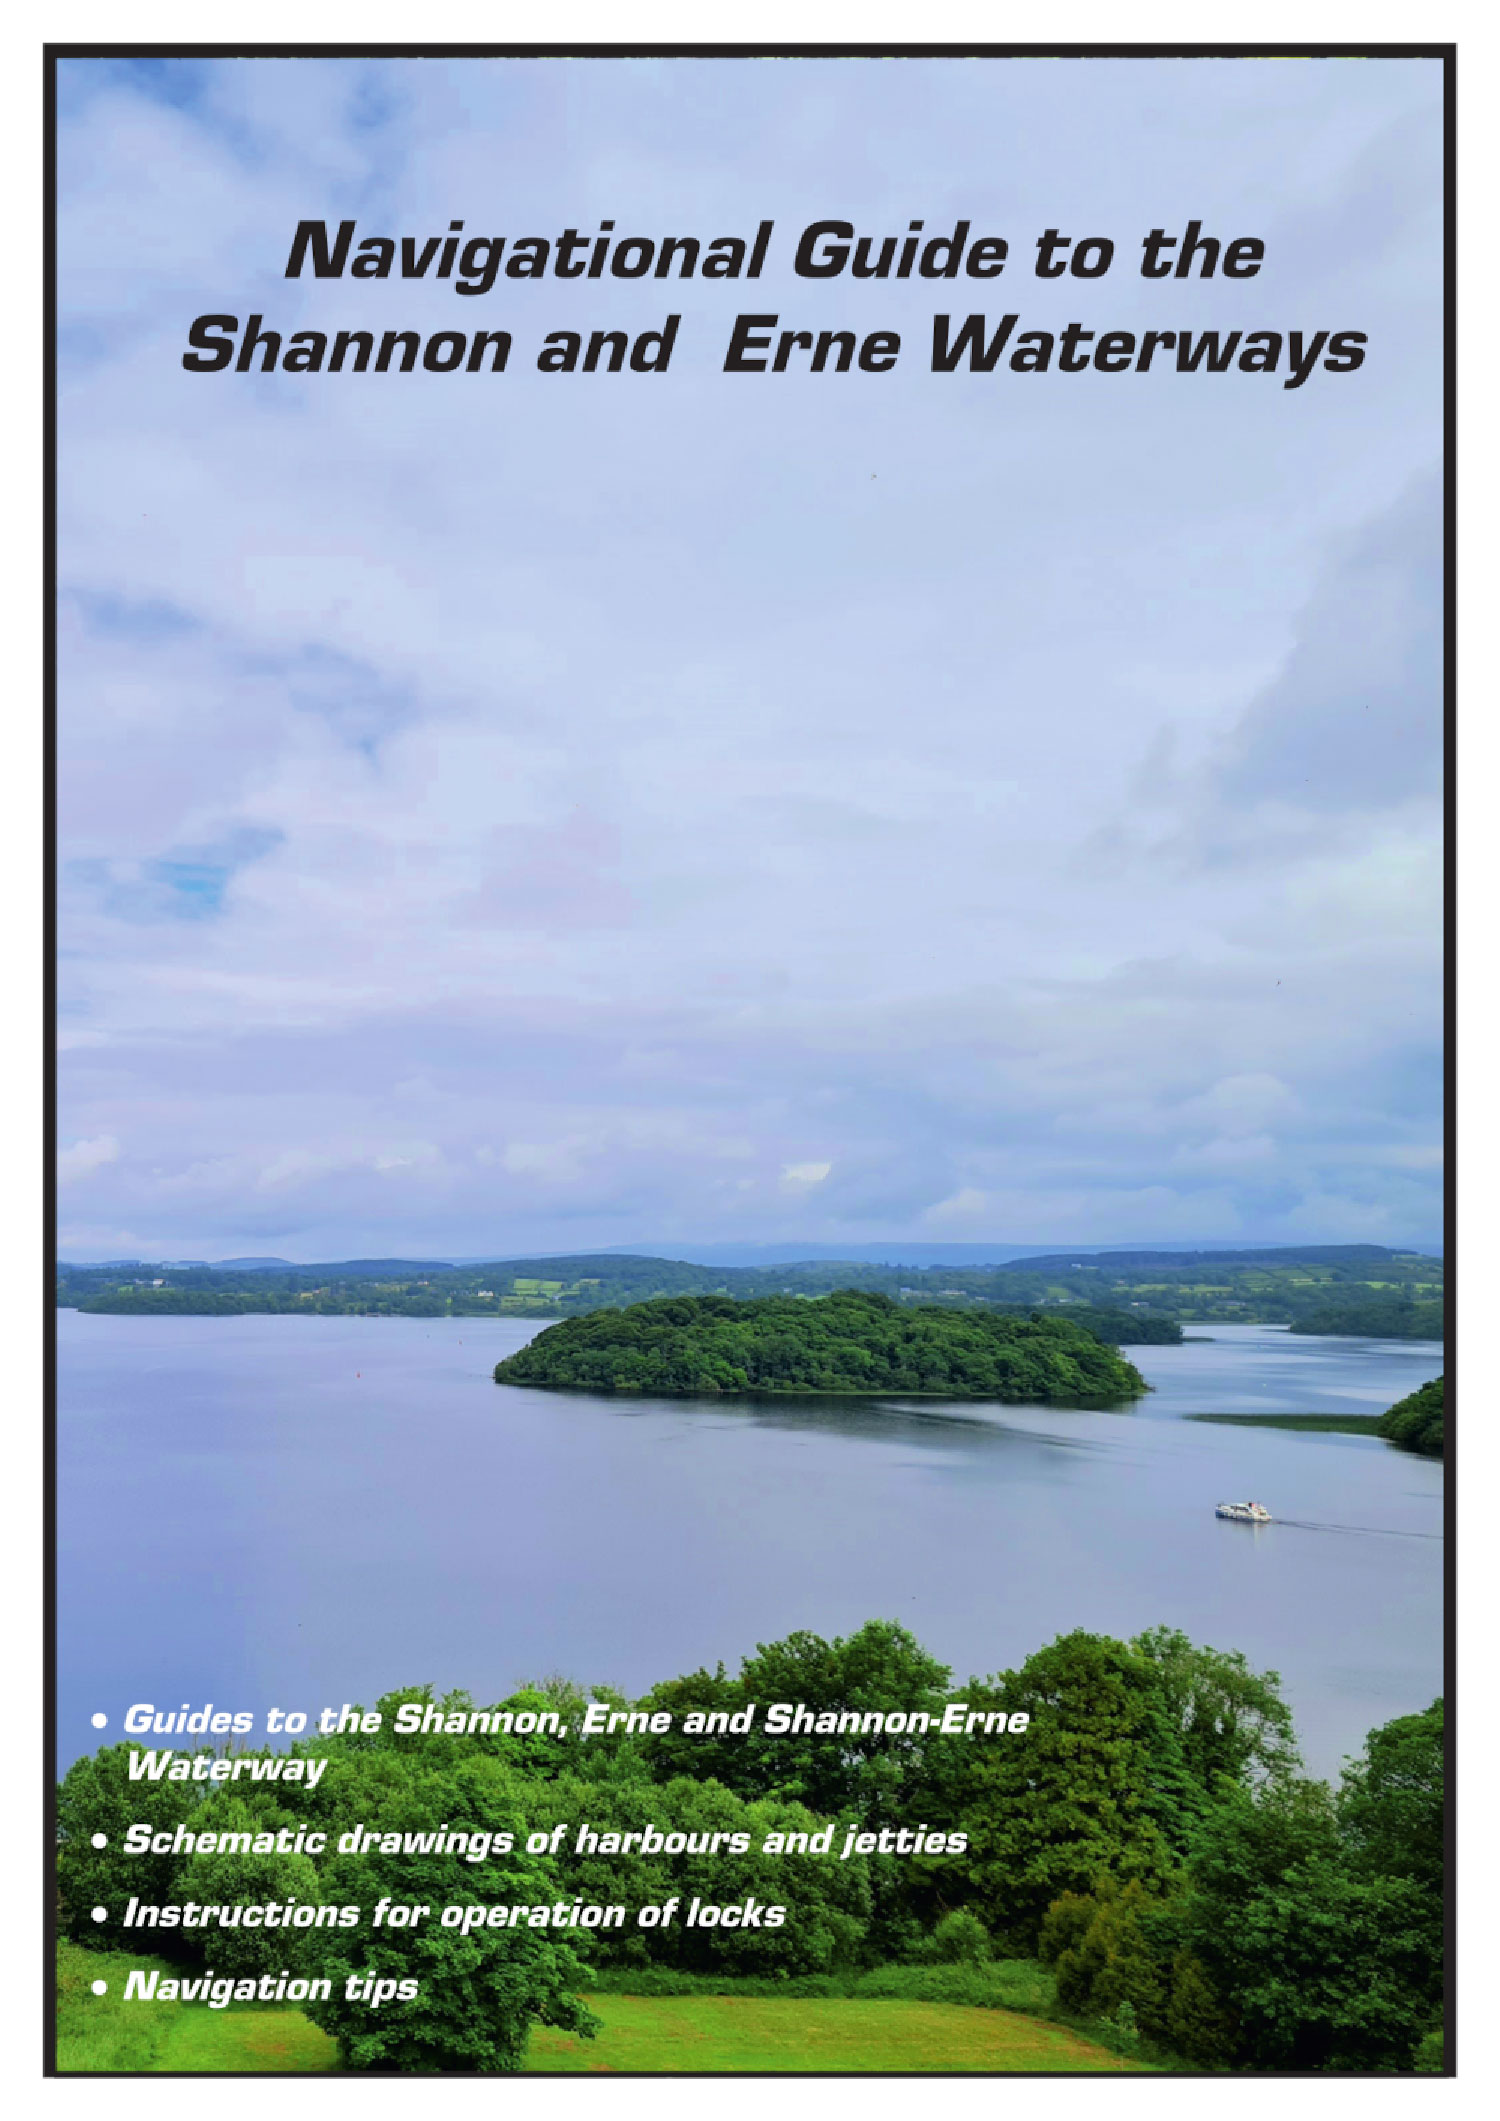 Navigational Guide to the Shannon, Shannon-Erne and Erne Waterways